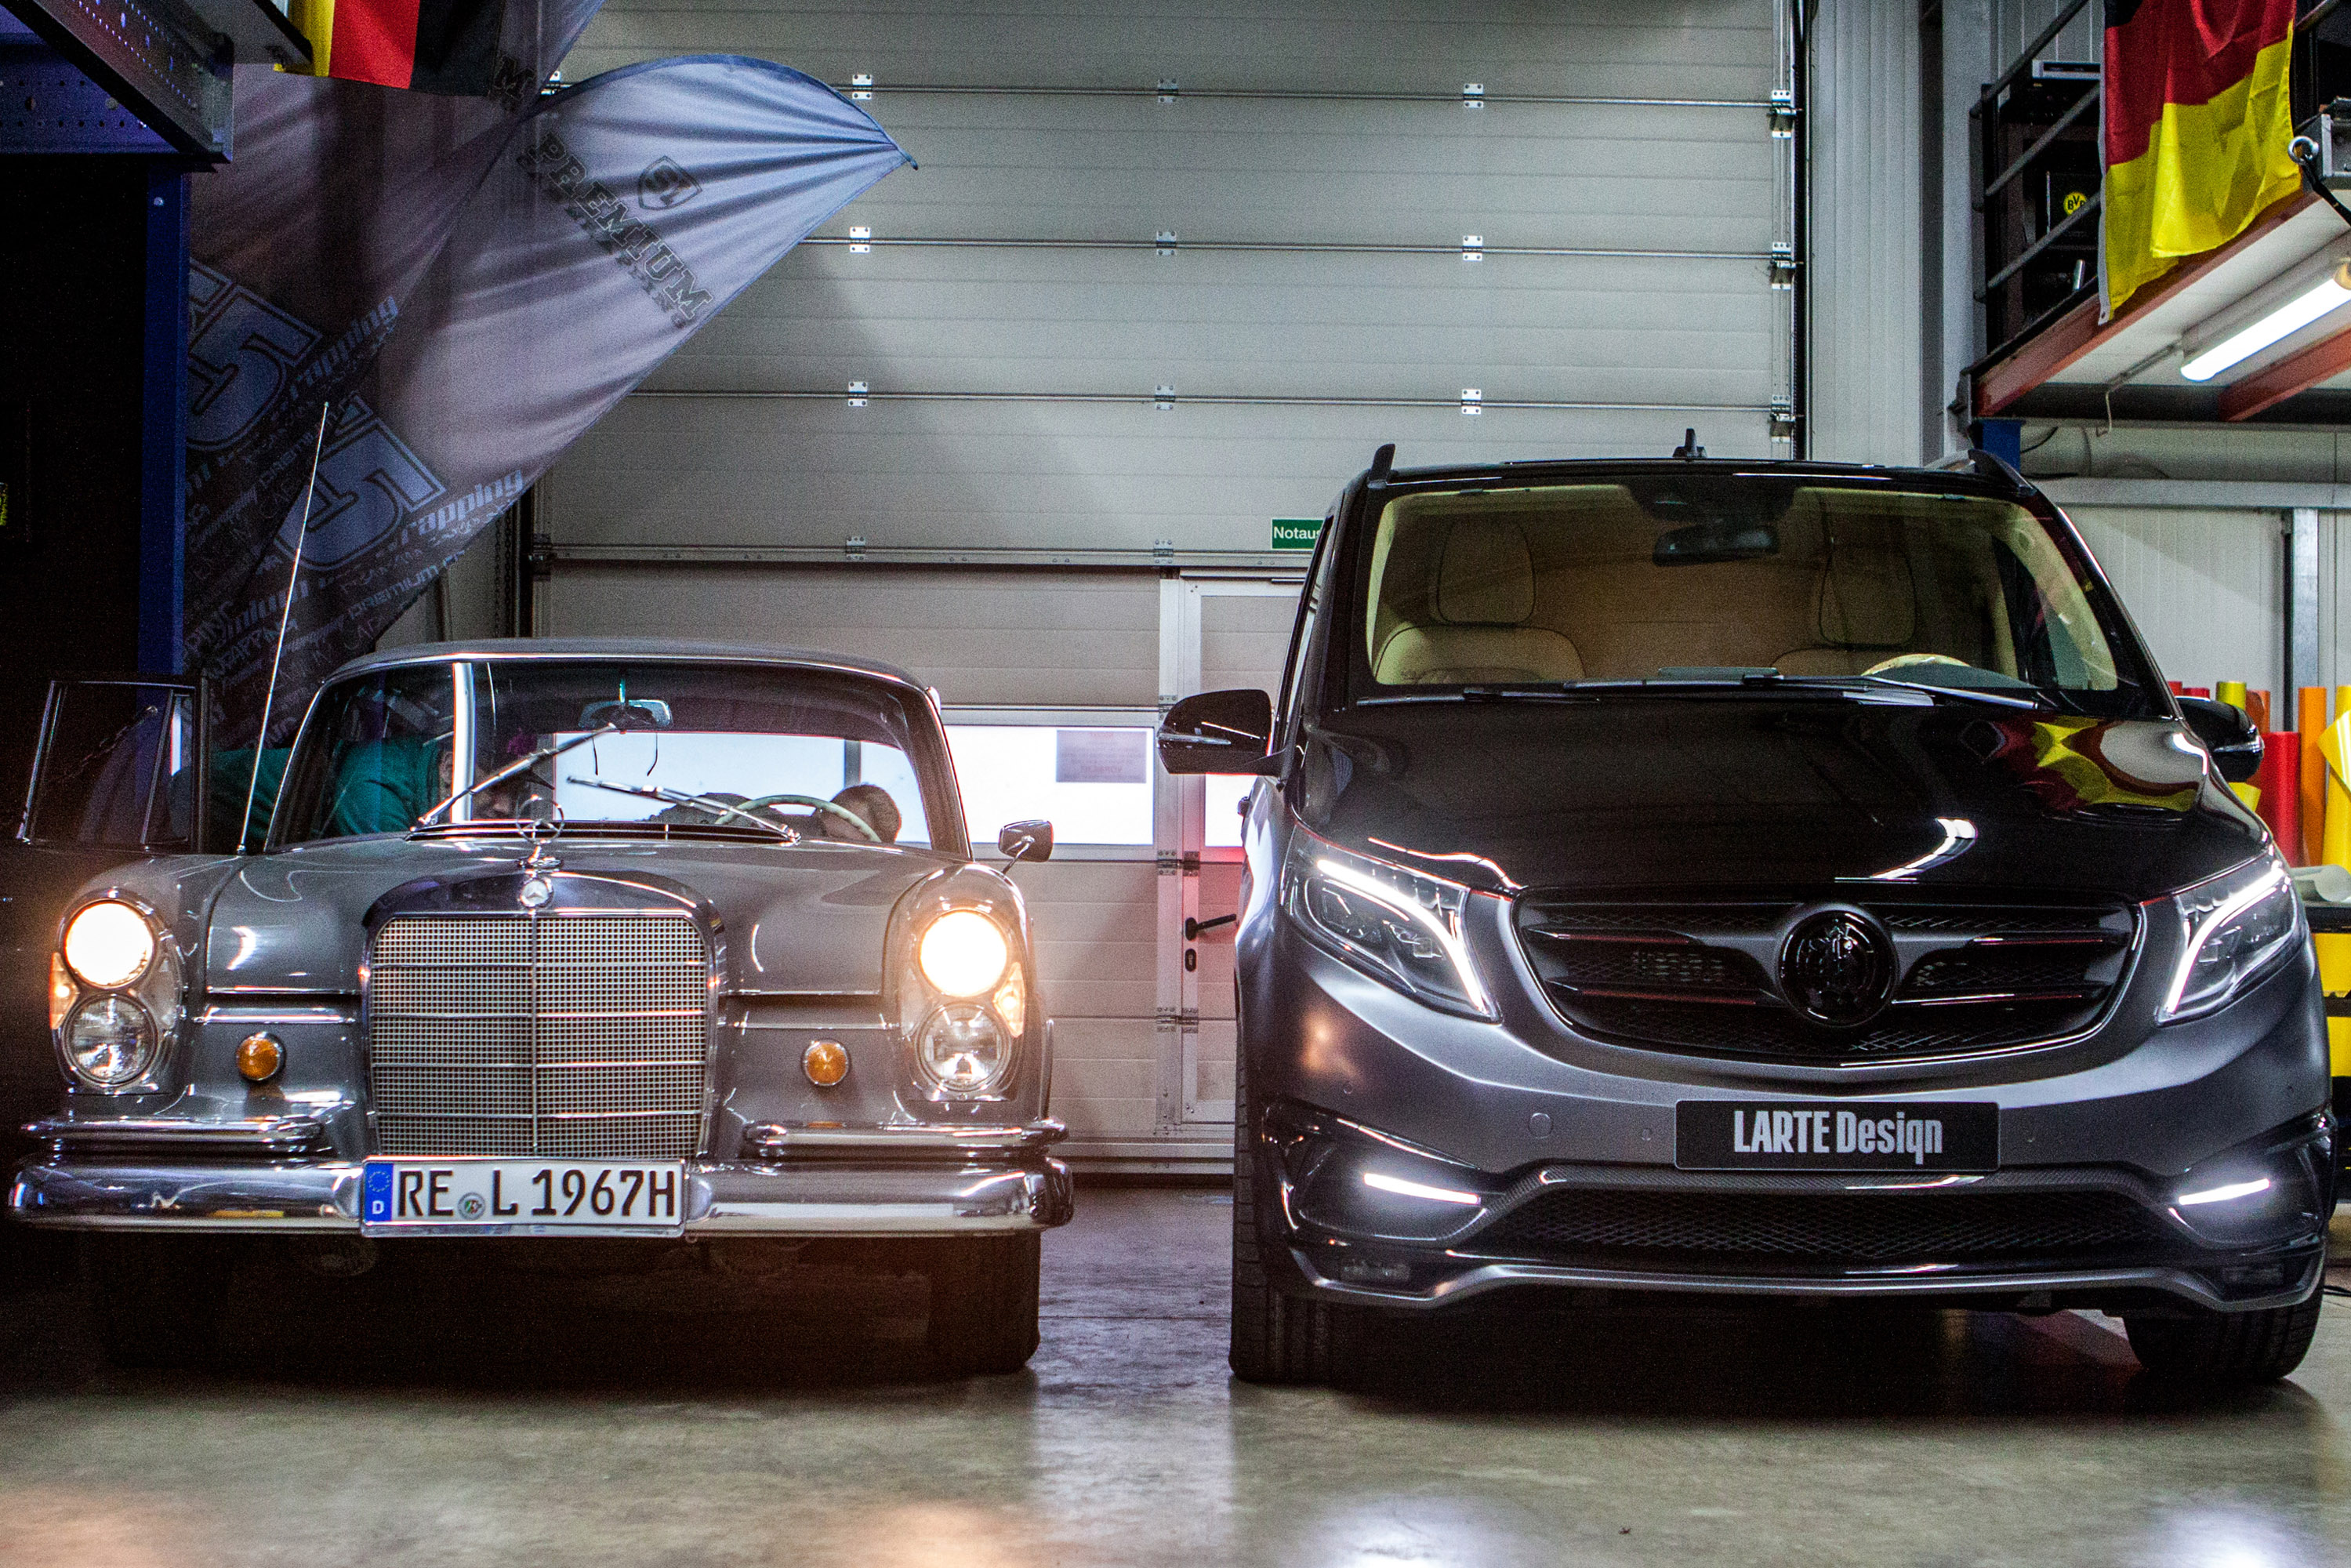 ... 2016 Larte Design Mercedes Benz V Class Black Crystal , 7 Of 21 ...